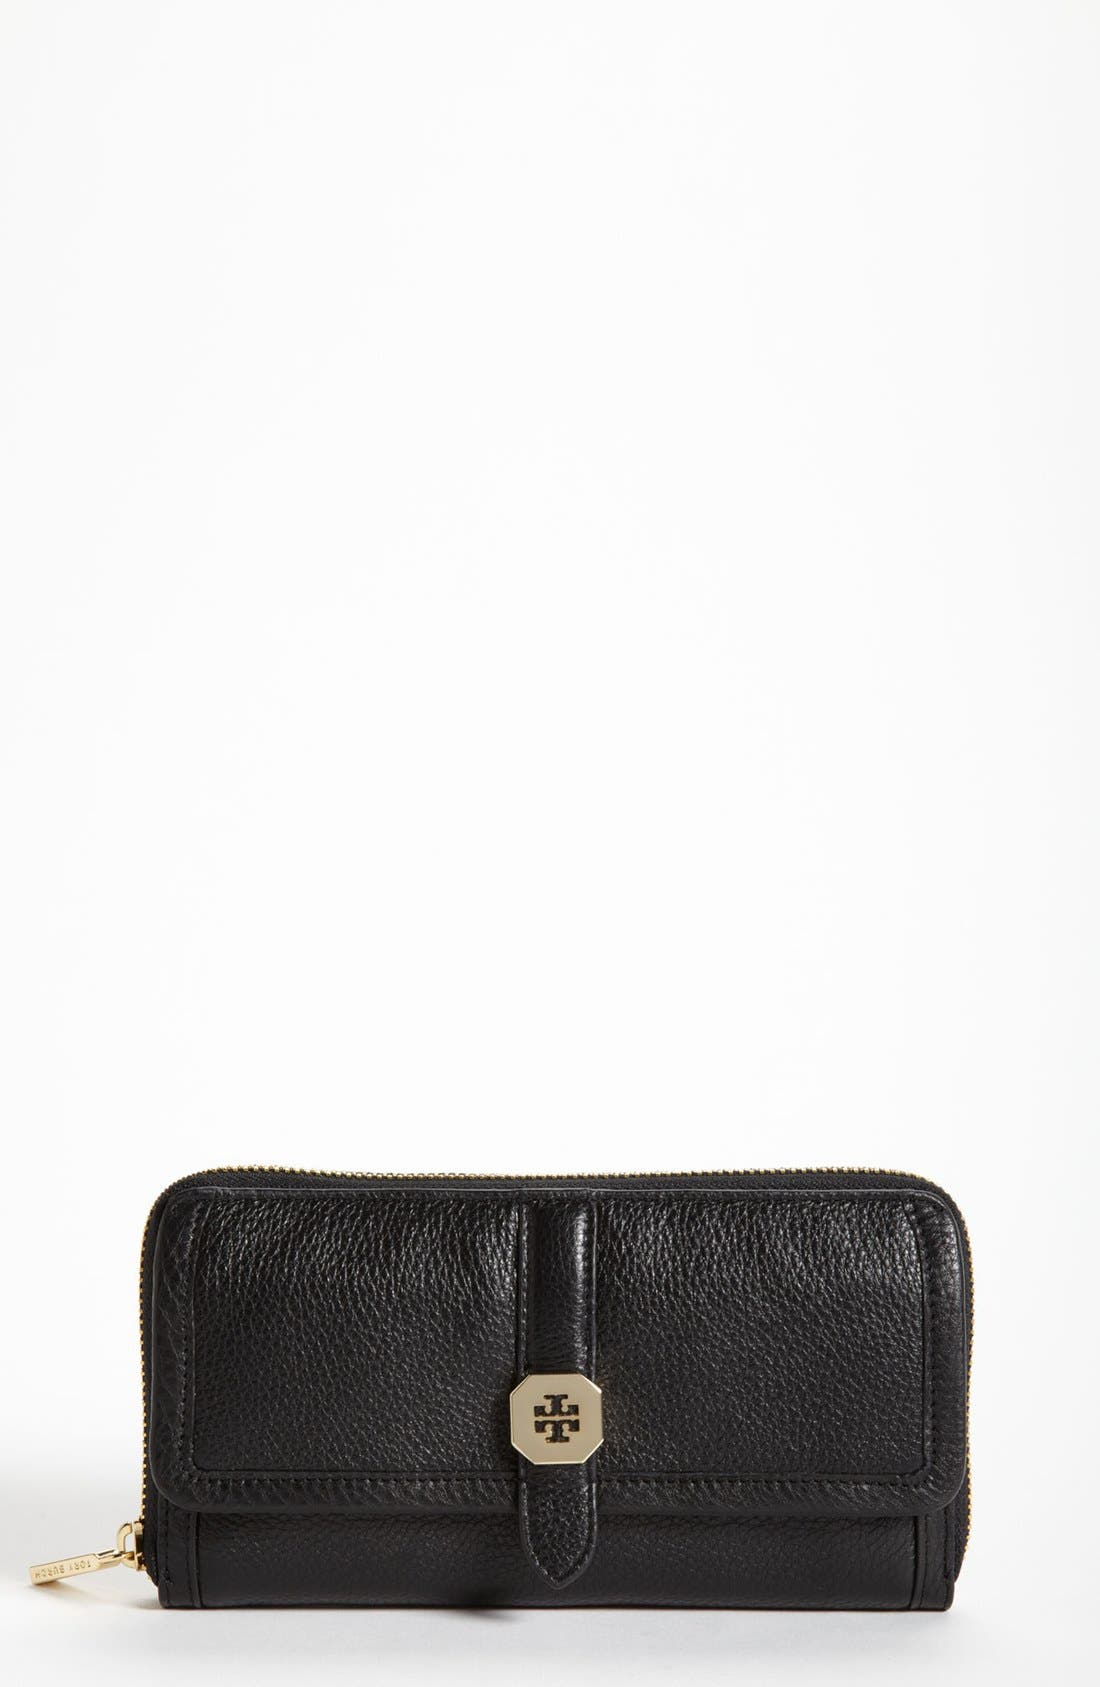 Alternate Image 1 Selected - Tory Burch 'Clay' Continental Leather Wallet